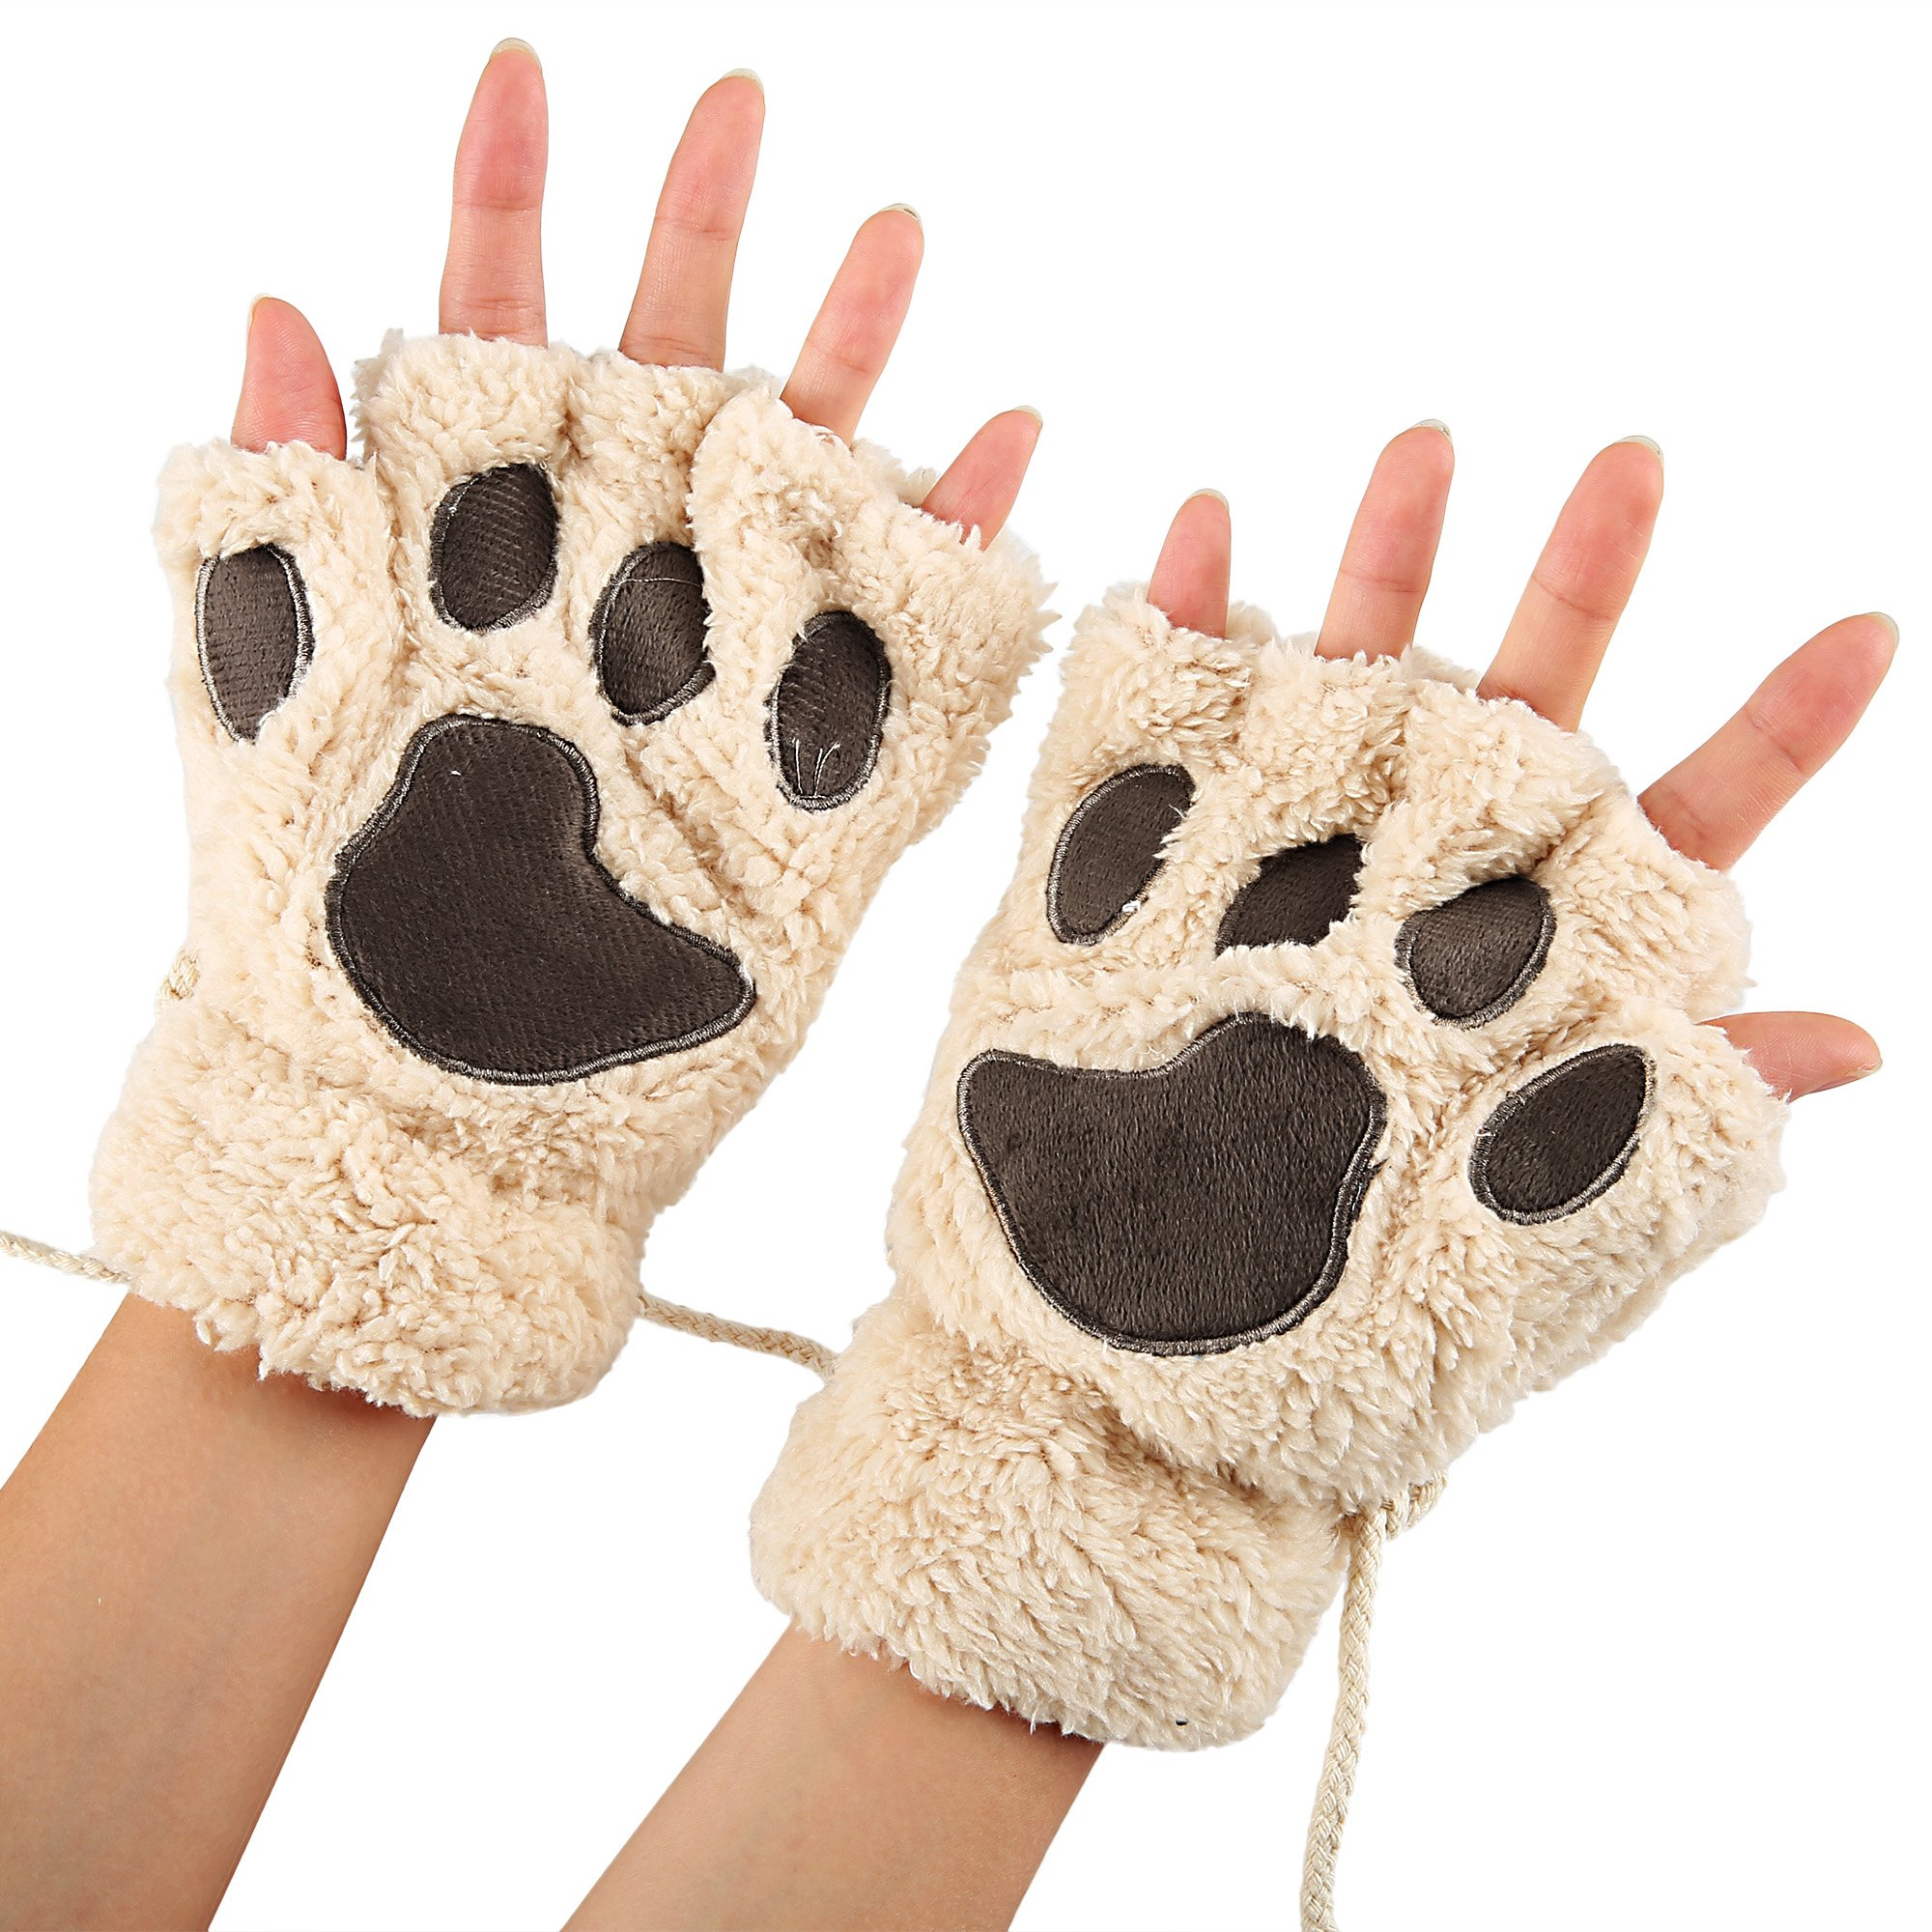 Nice gloves are small gift ideas for girlfriend